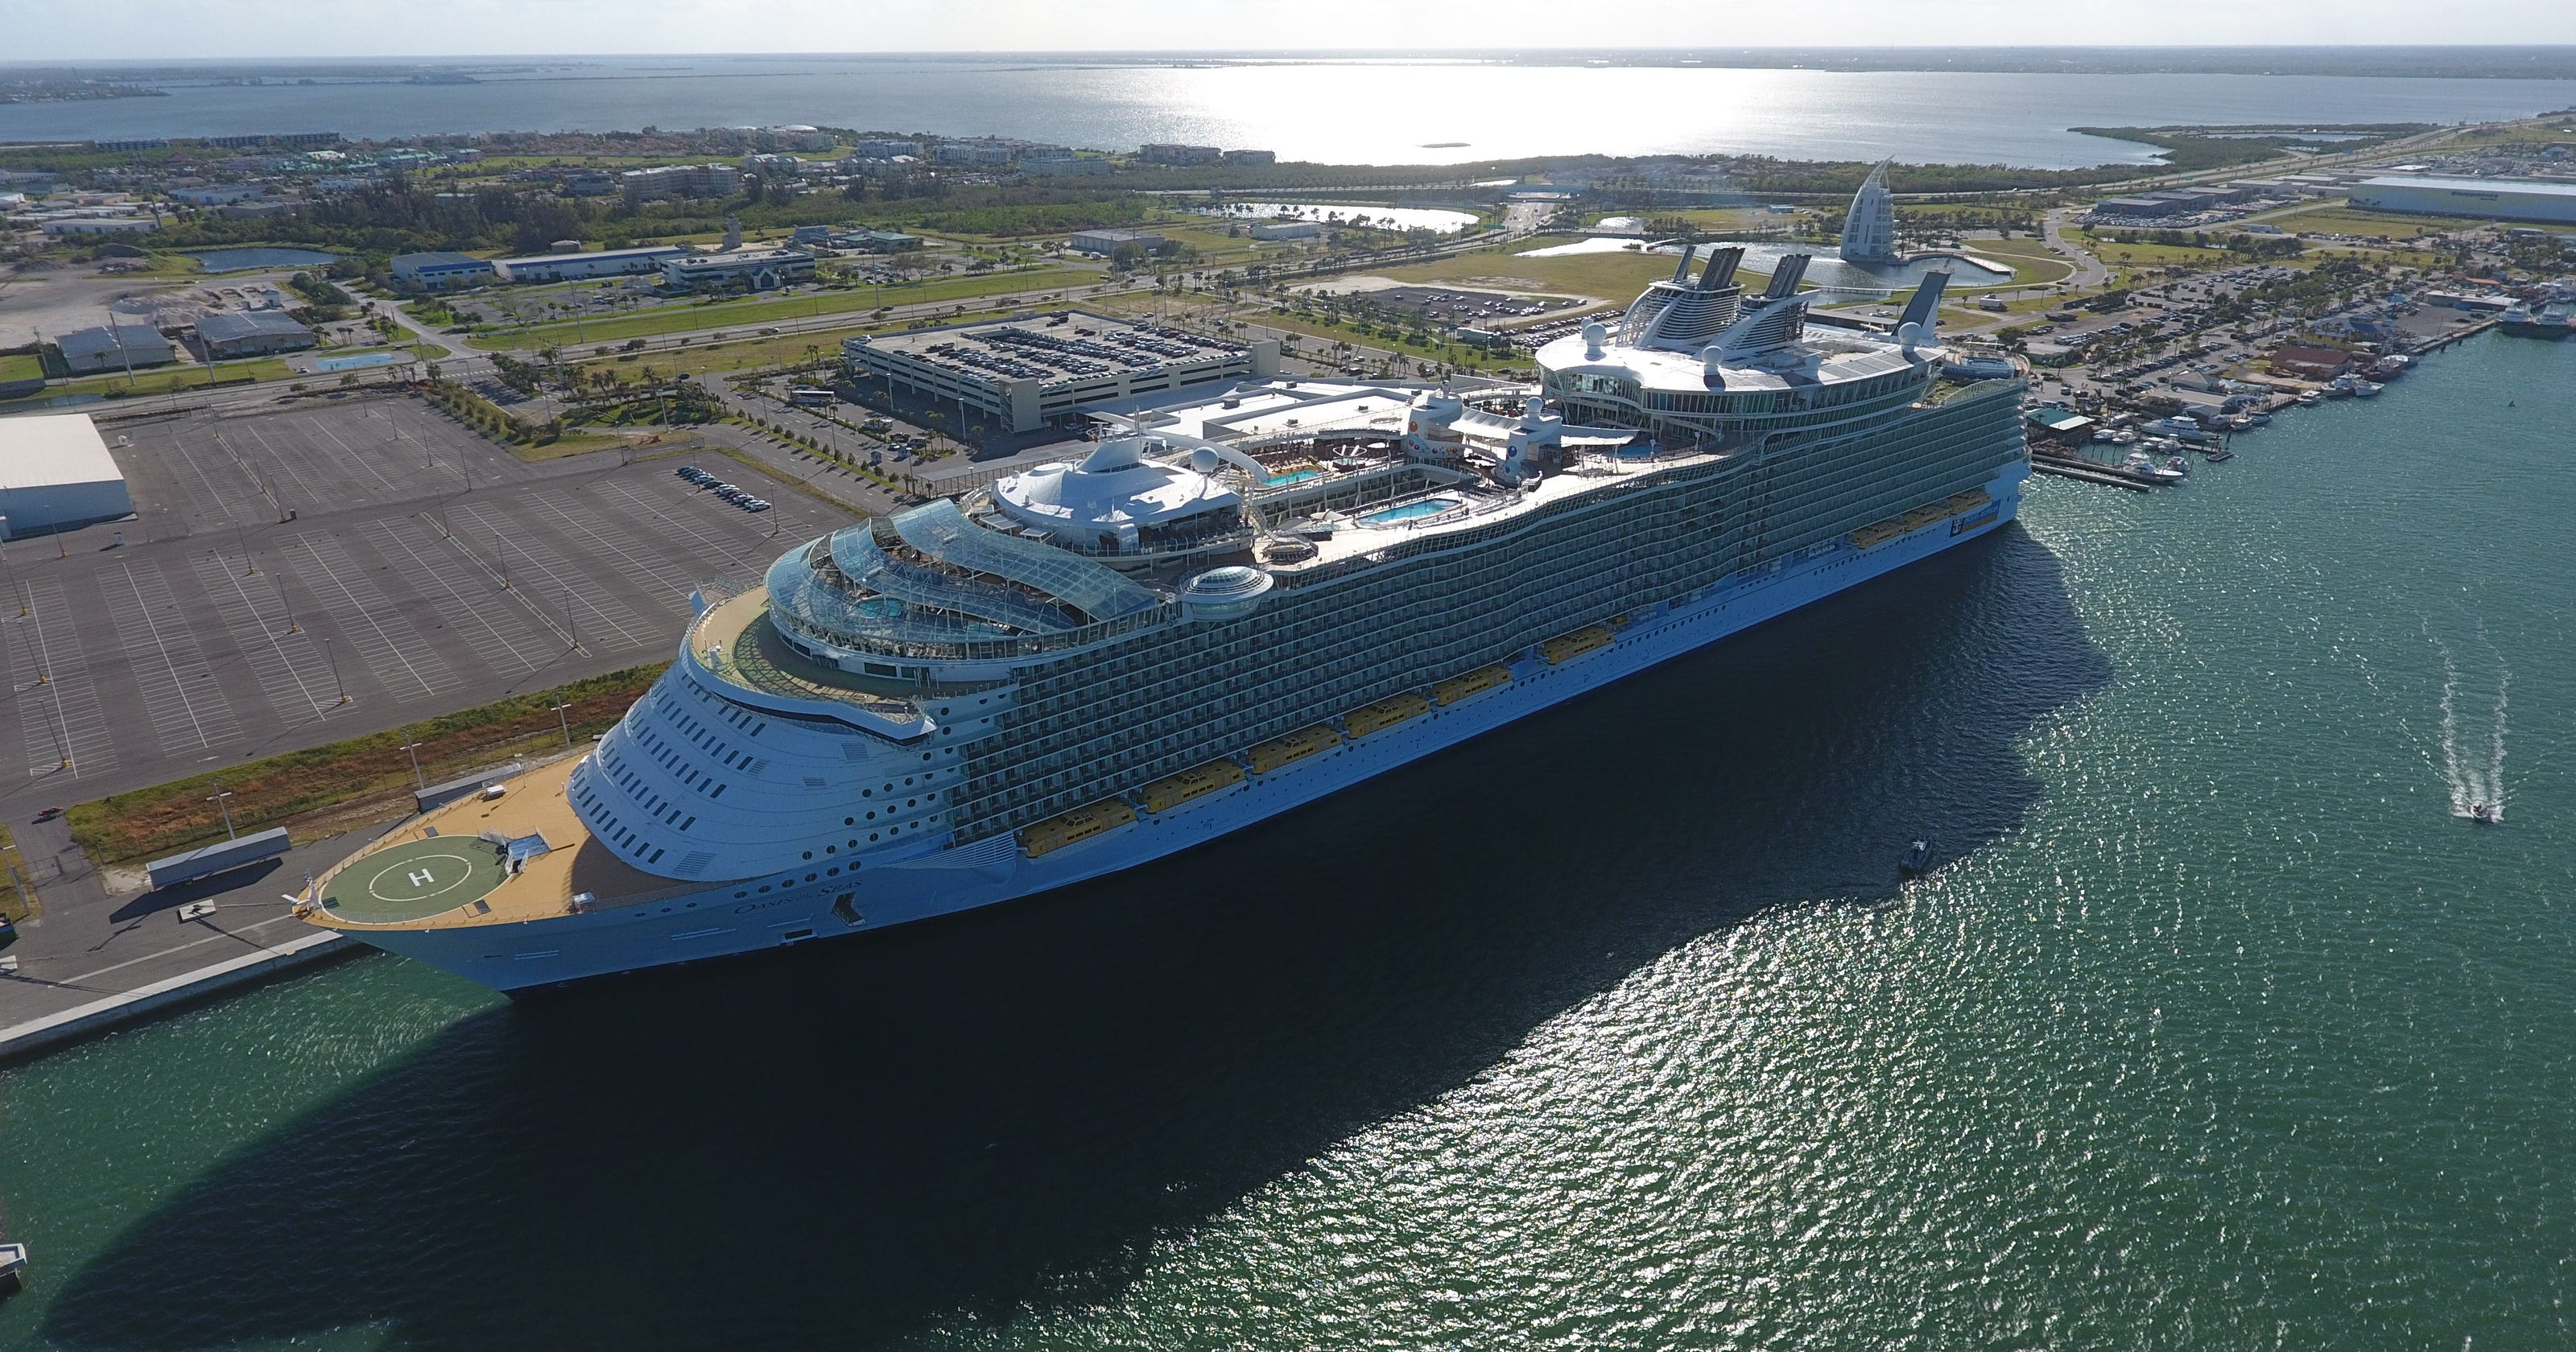 bcd37647aac Norovirus outbreak on Royal Caribbean prompts cruise ship s early return